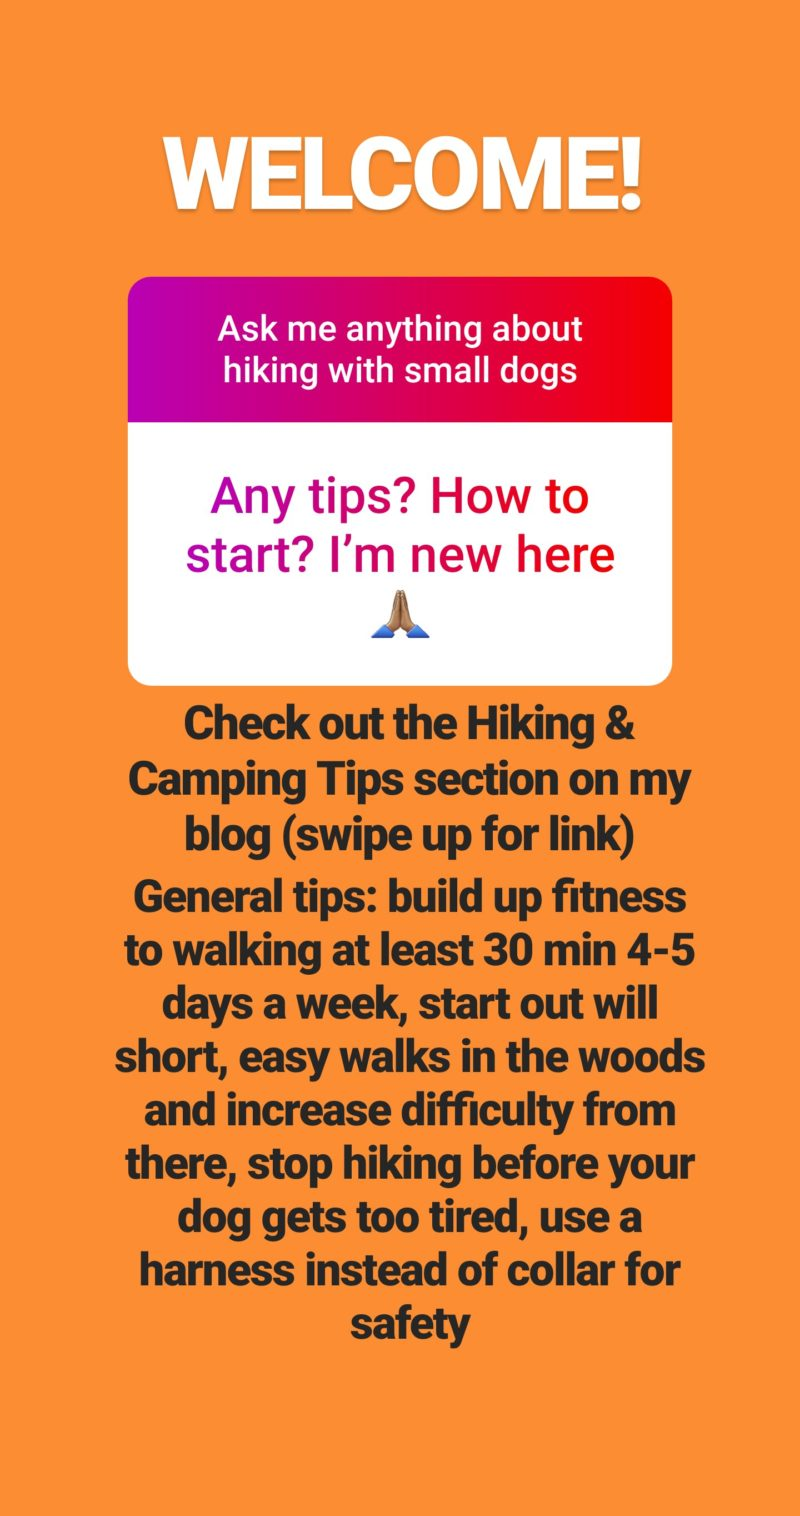 Reader Question: I'm new to hiking with my Dachshund. Do you have any tips for me?